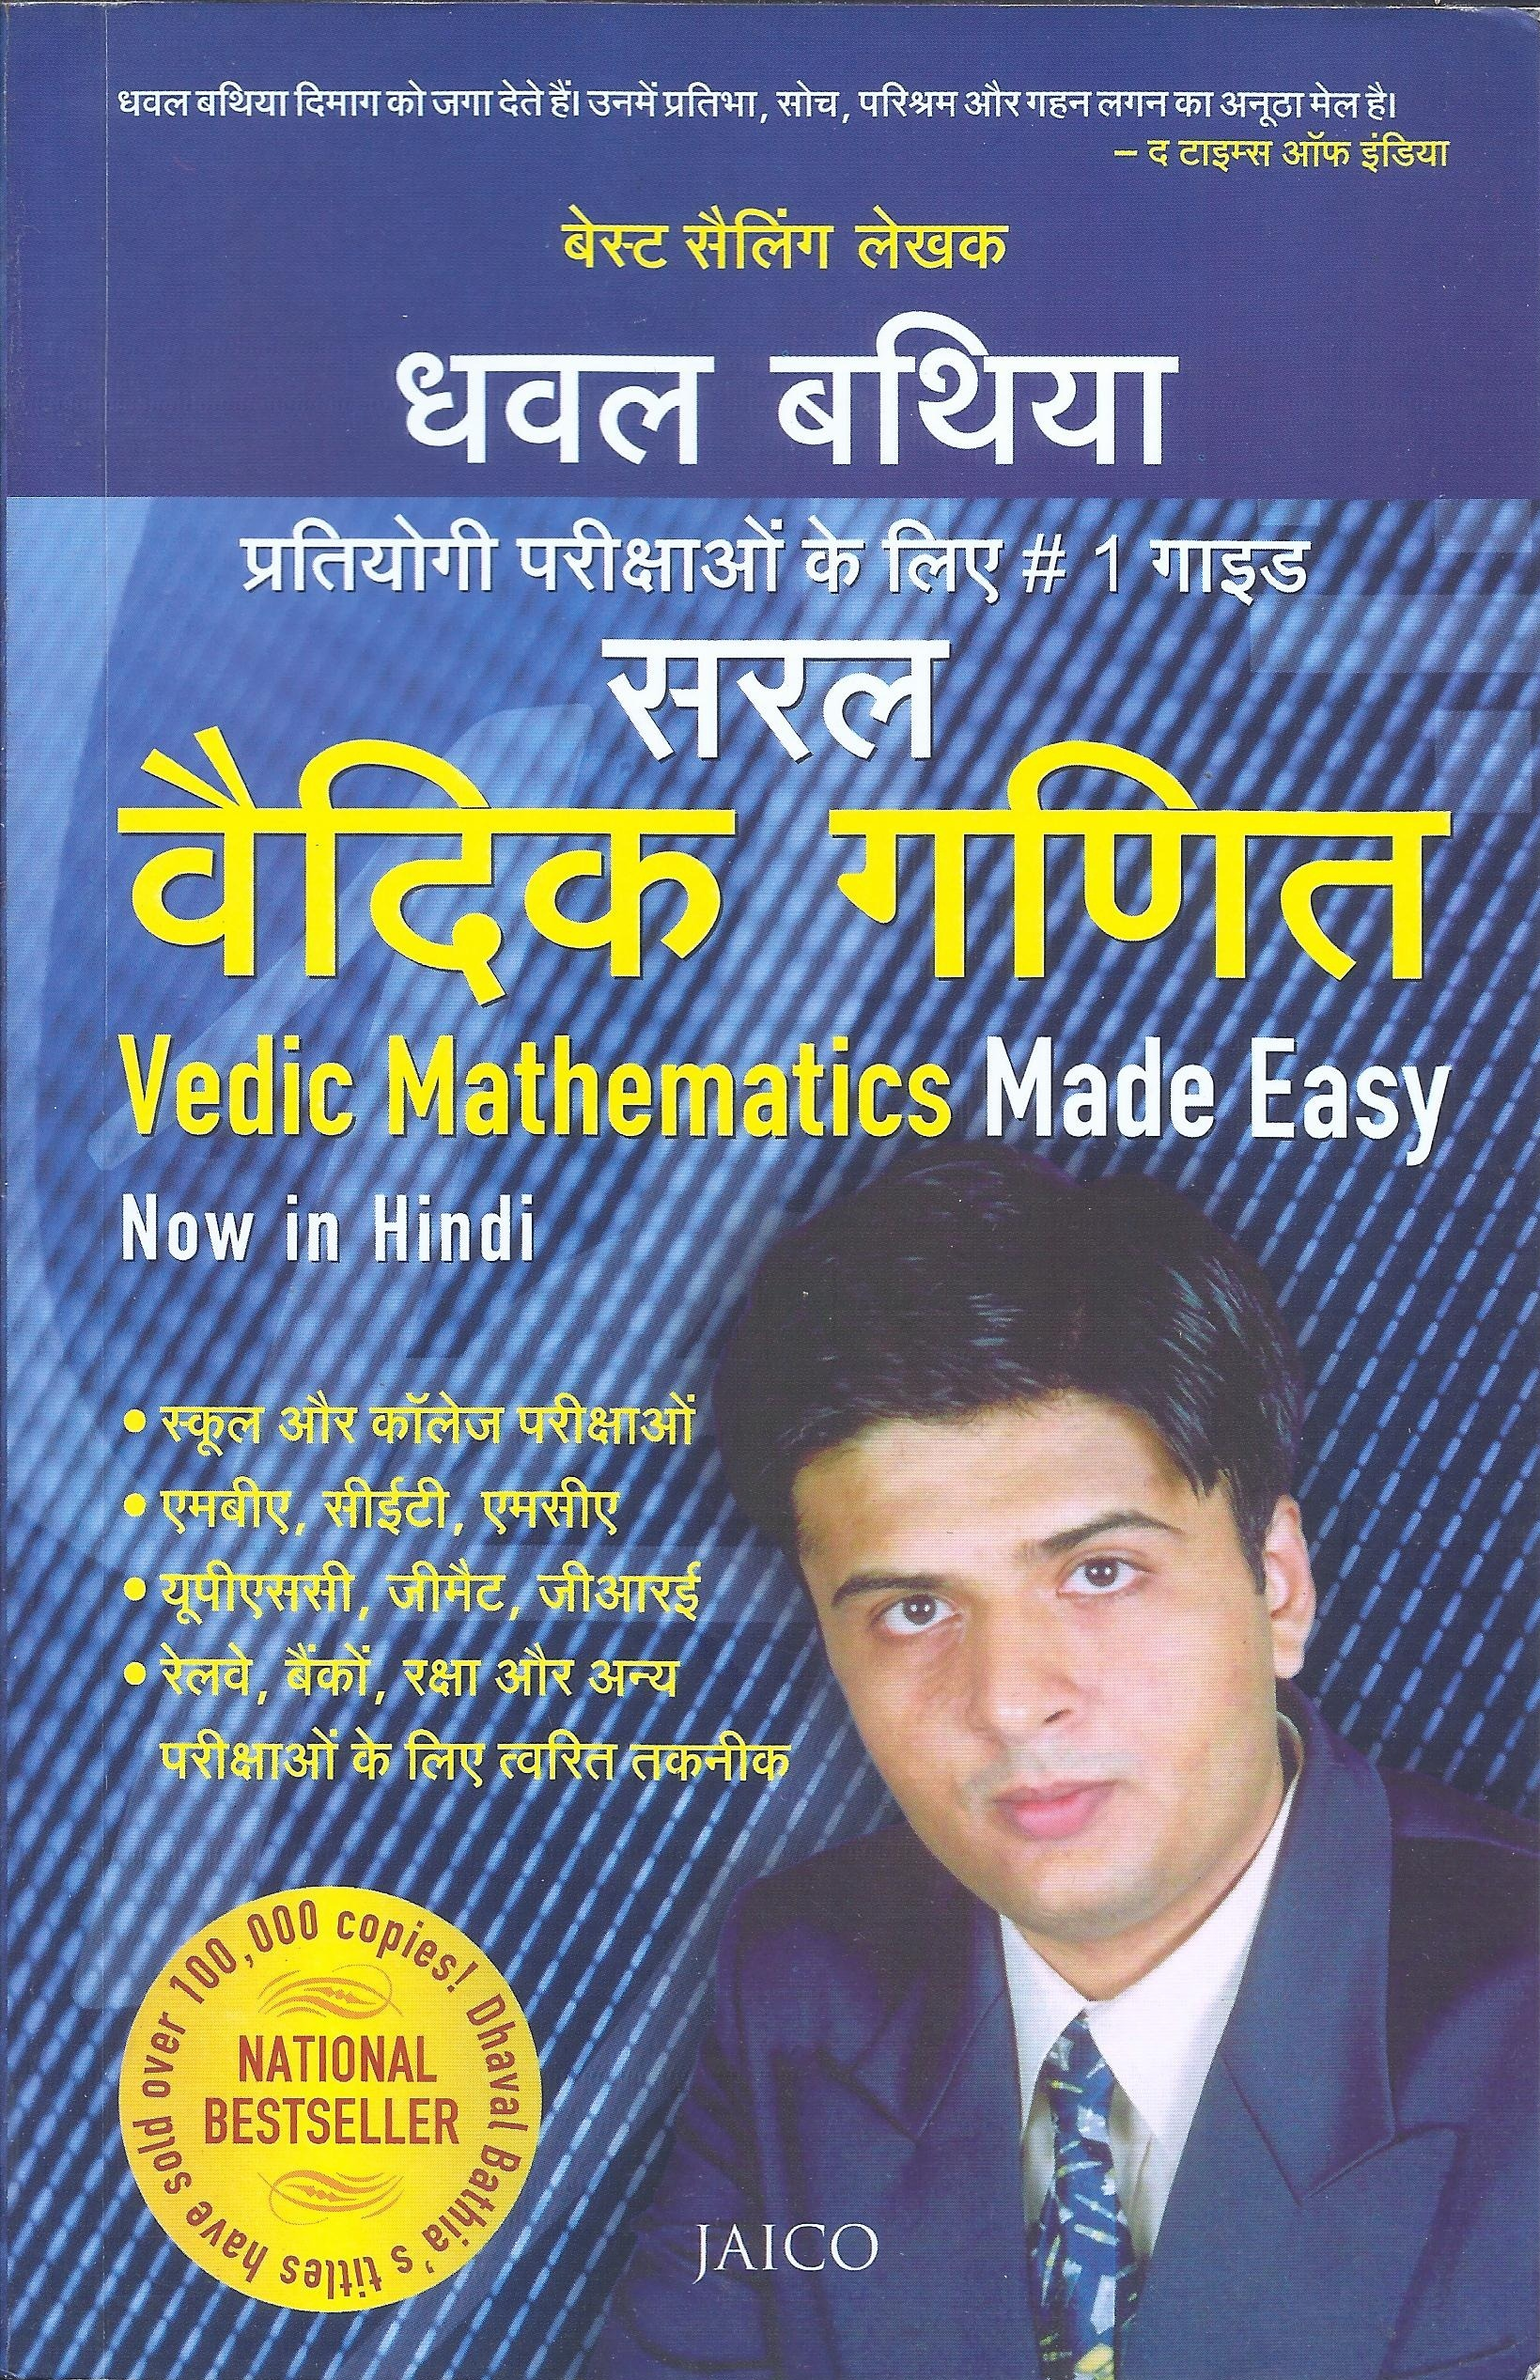 Vedic Mathematics Made Easy in Hindi Language